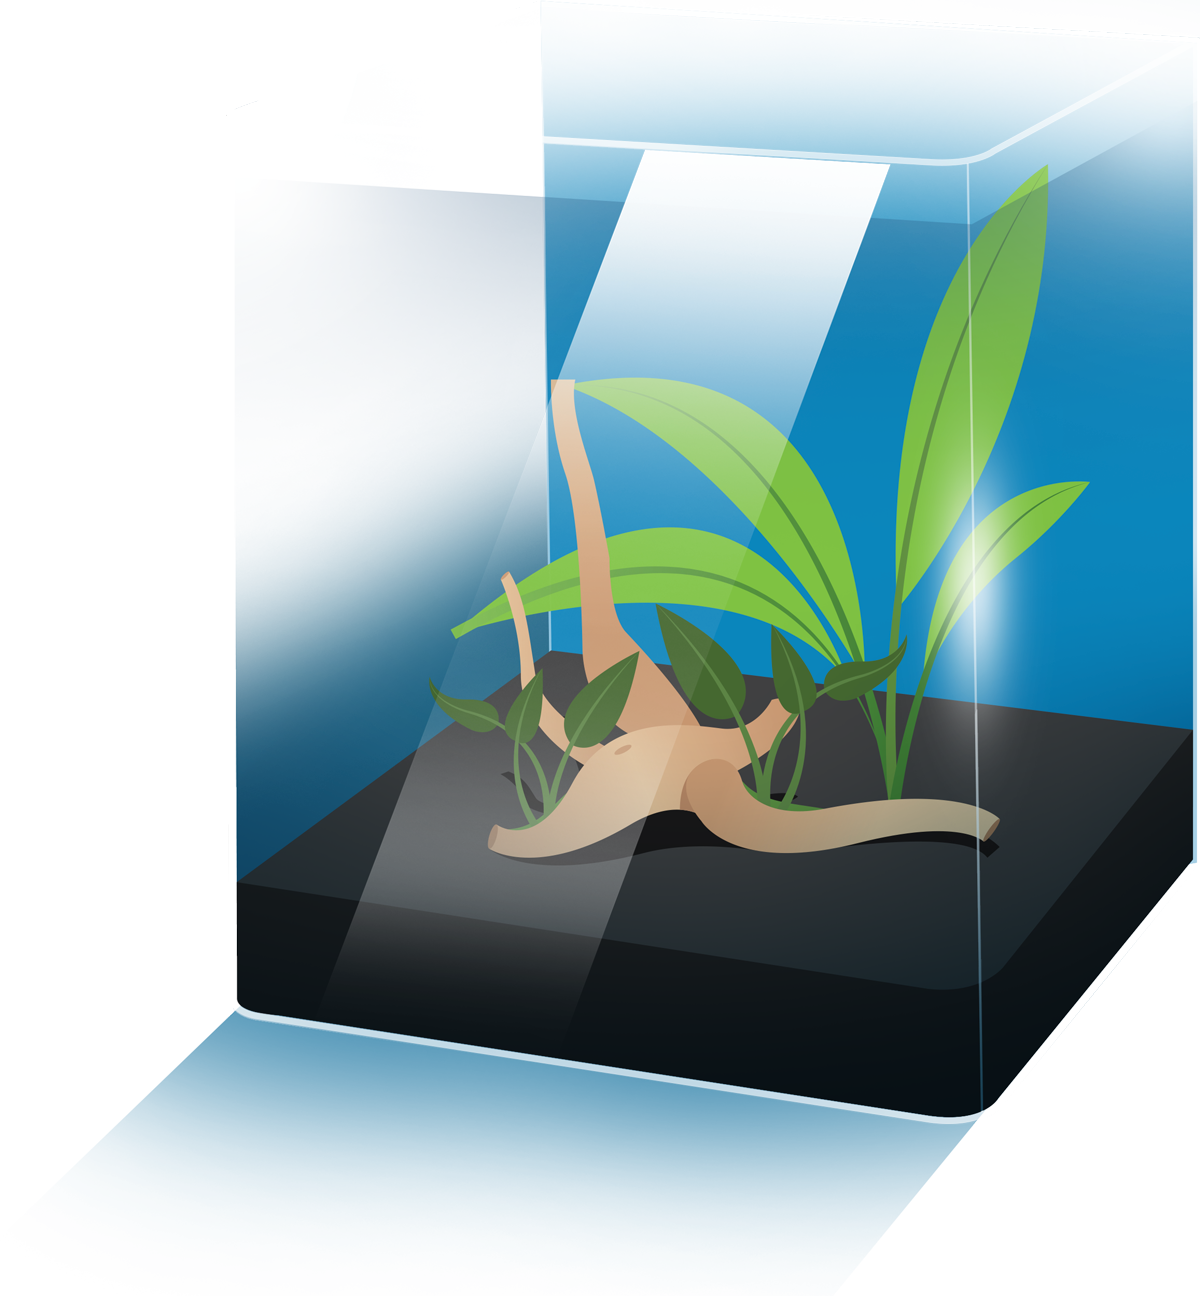 Fish tank plants clipart clipart free stock Fish Tank Guide - The beginners guide to setting up your first aquarium clipart free stock